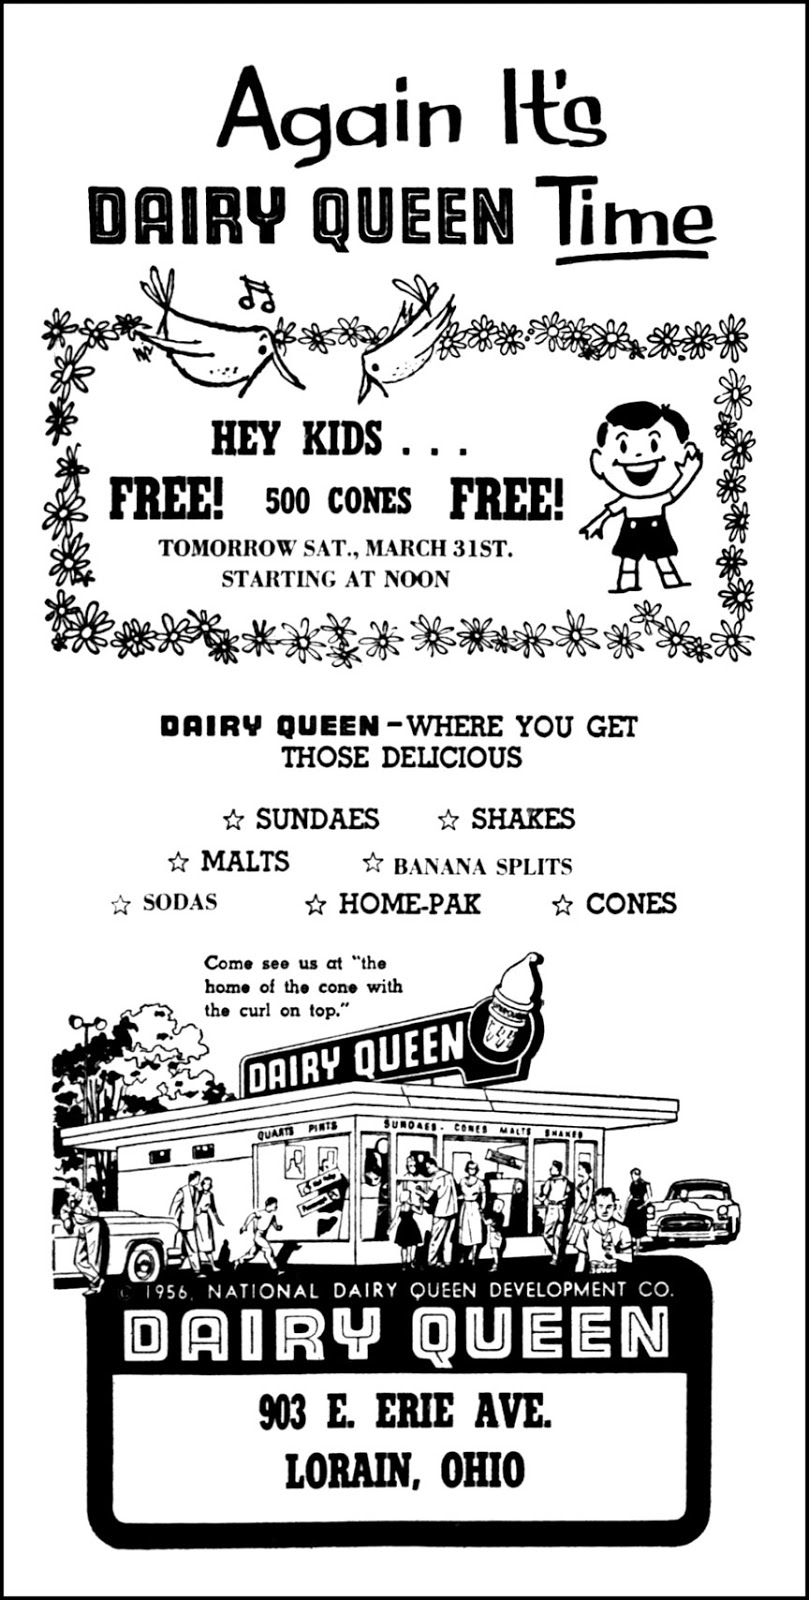 Dairy Queen - 903 East Erie Avenue, Lorain, Ohio U.S.A. - published in the Lorain Journal - March 30, 1956